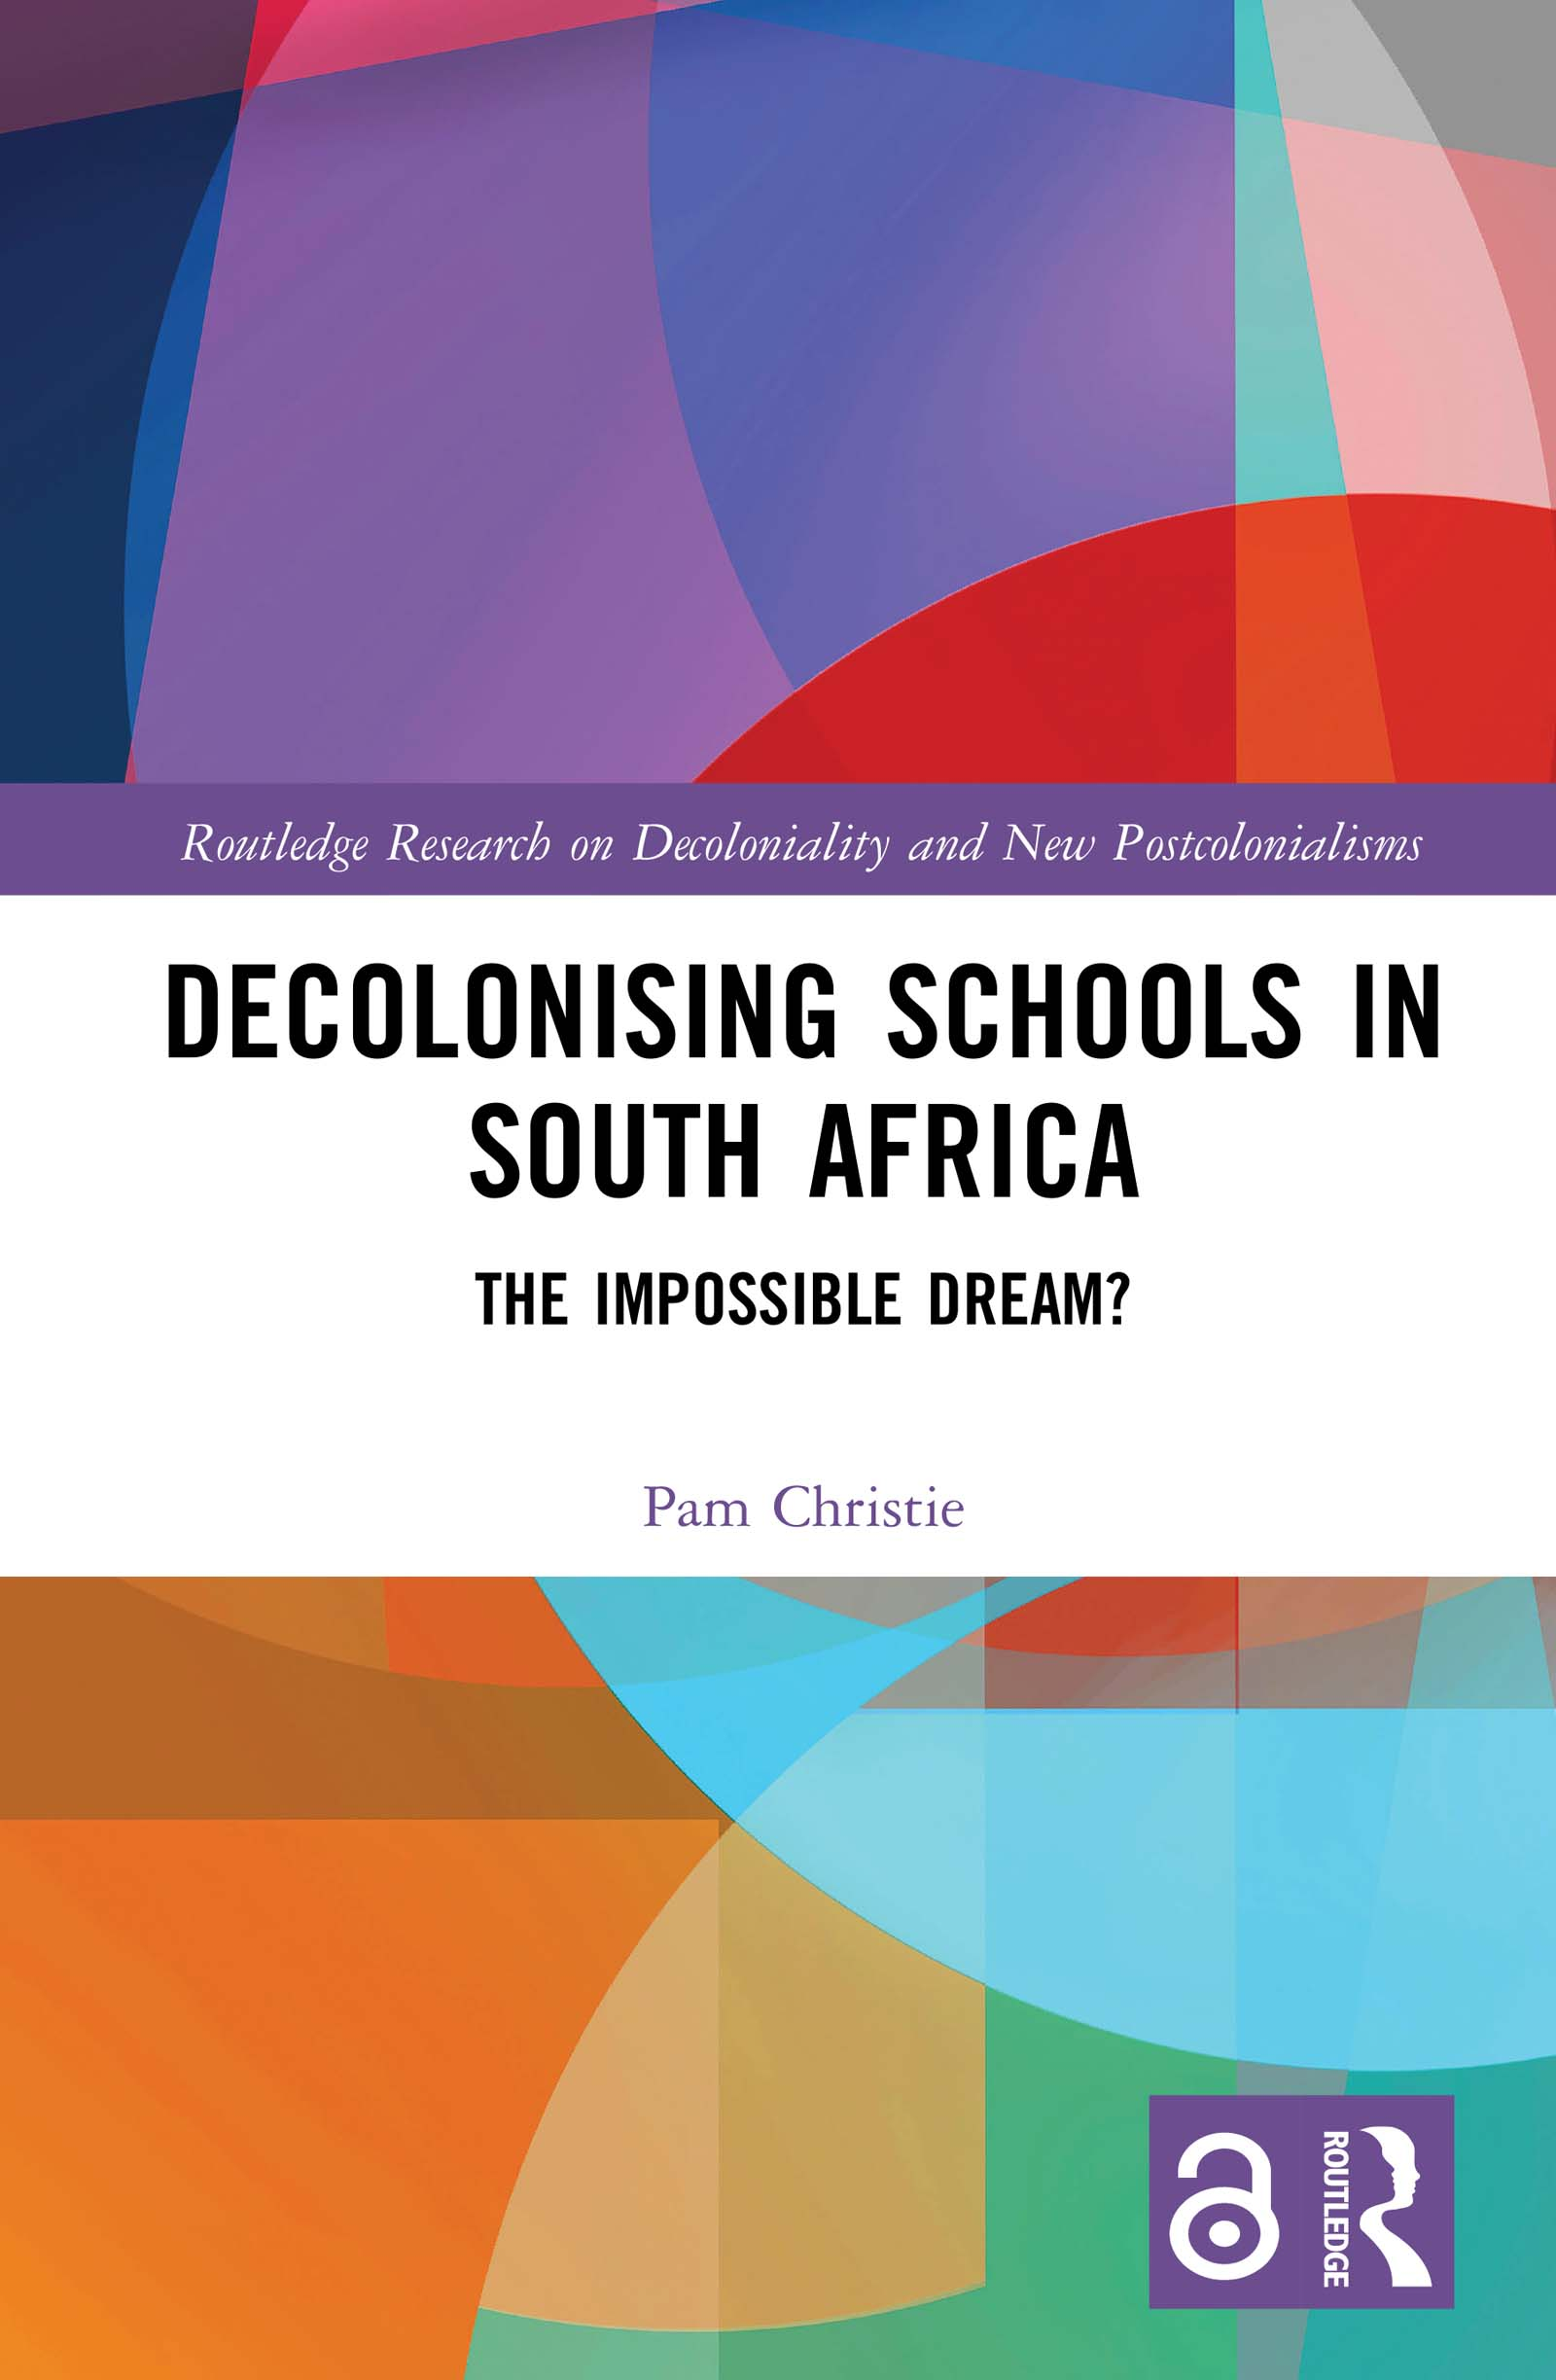 Decolonising Schools in South Africa